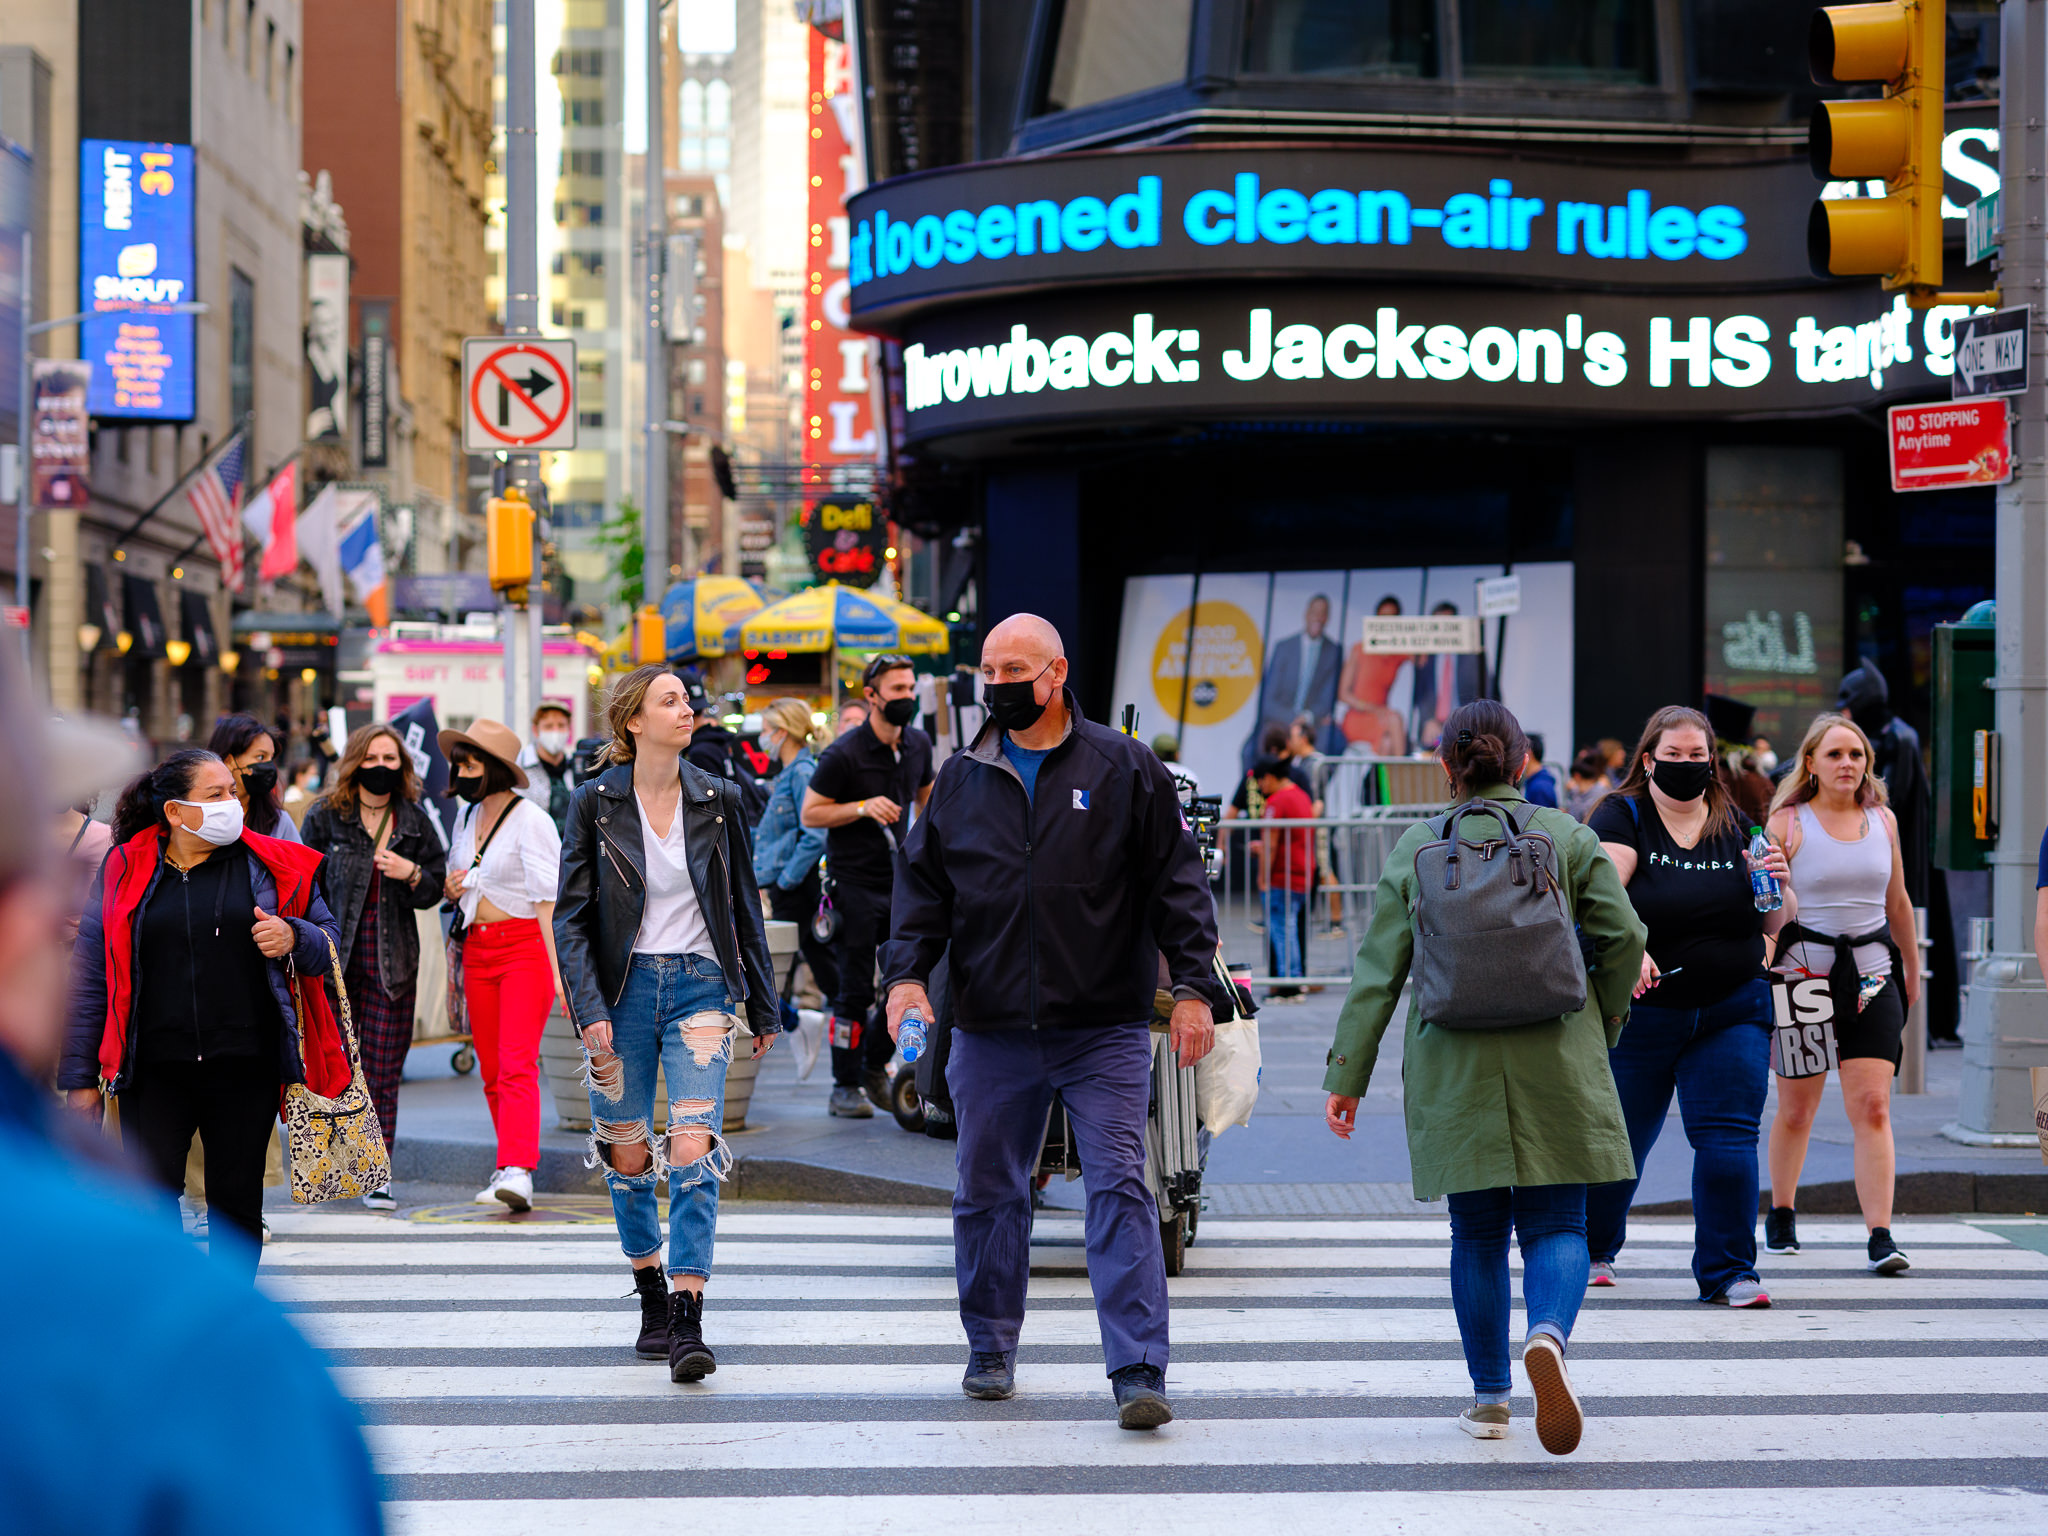 a photo of people in a crosswalk in times square new york city